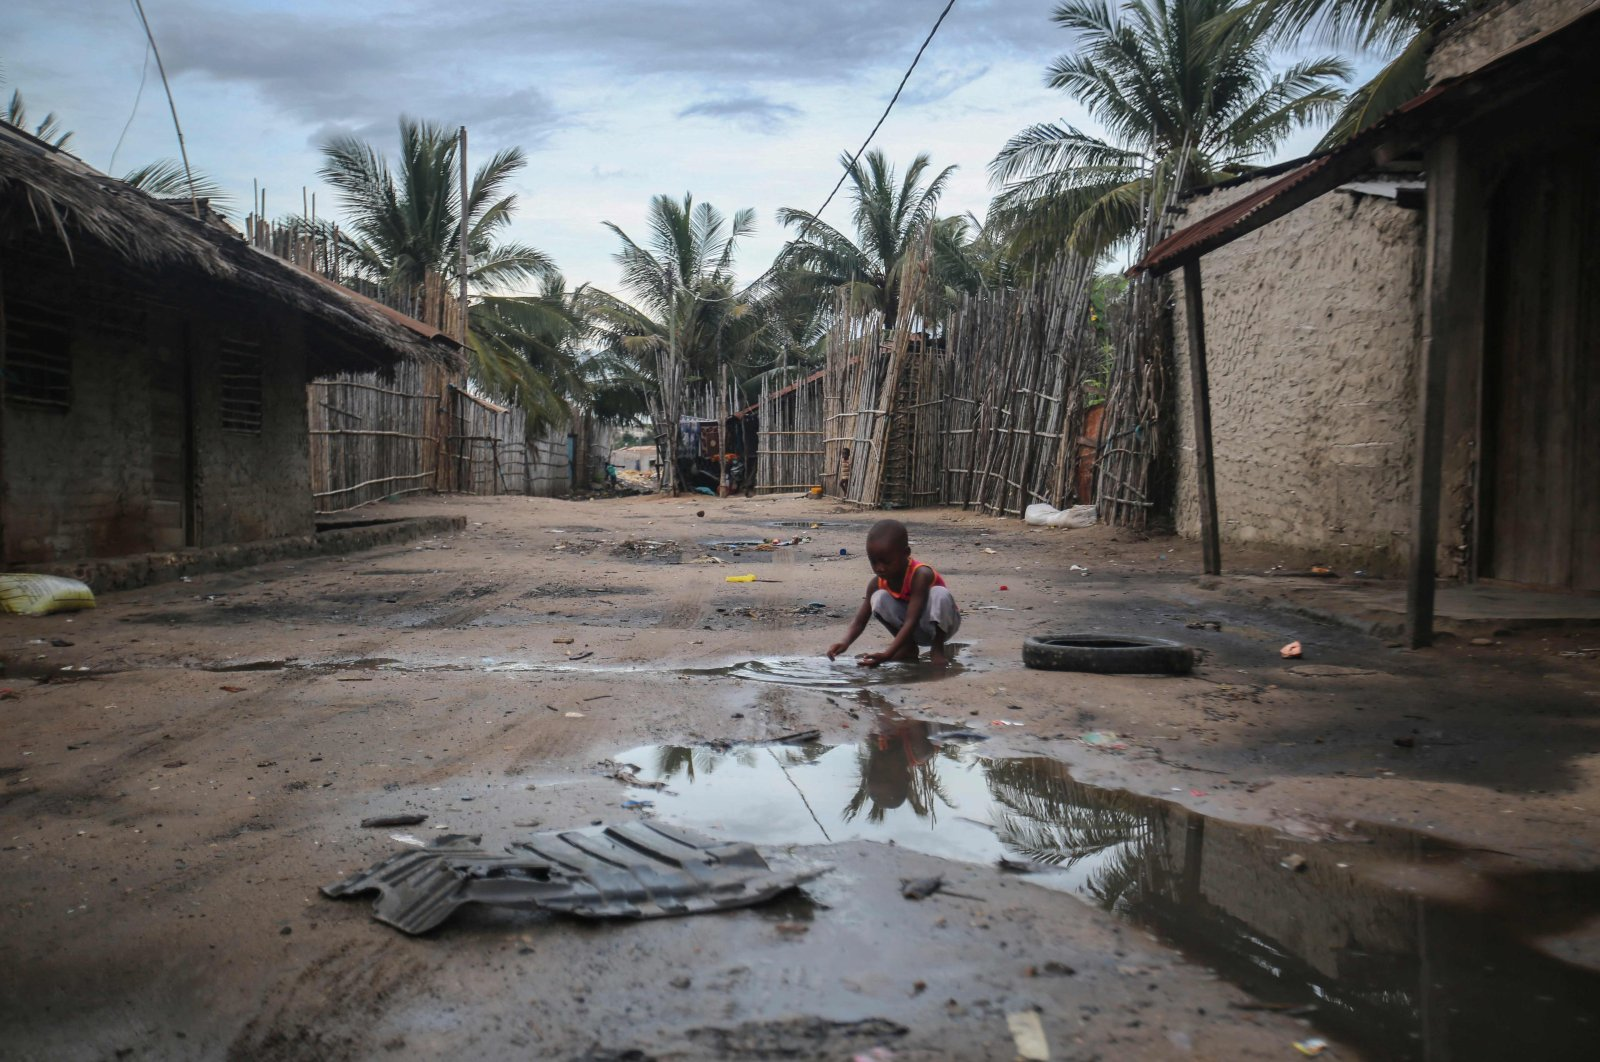 A child plays in one of the alleys of the port of Paquitequete near Pemba, Mozambique, March 29, 2021. (AFP Photo)